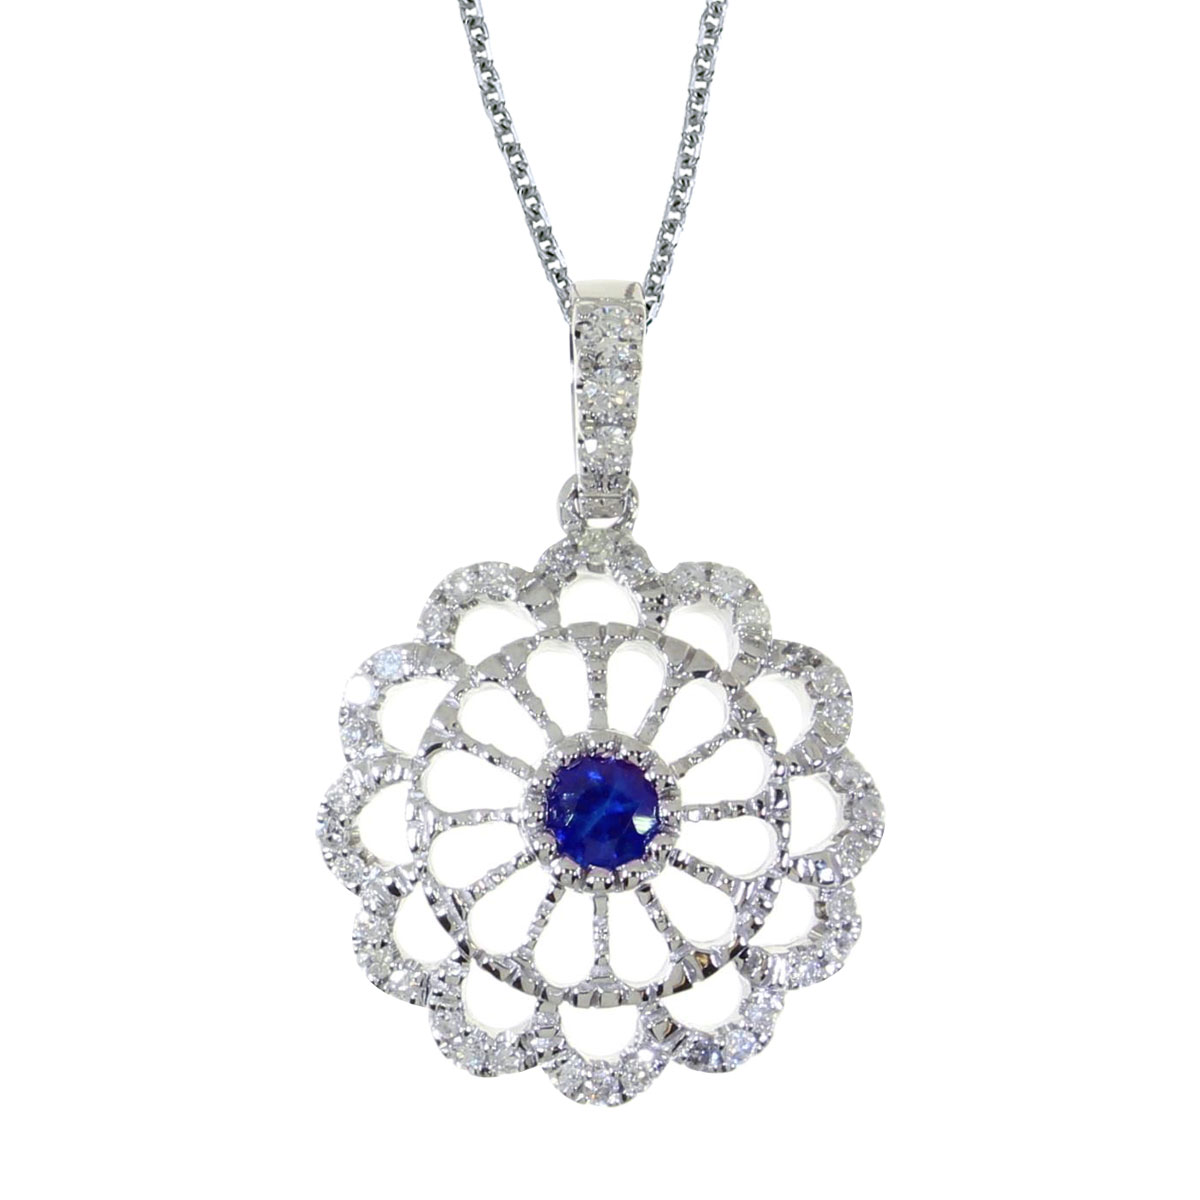 This beautiful 14k white gold pendant features a bright 3.5 mm round sapphire and .05 carats of s...